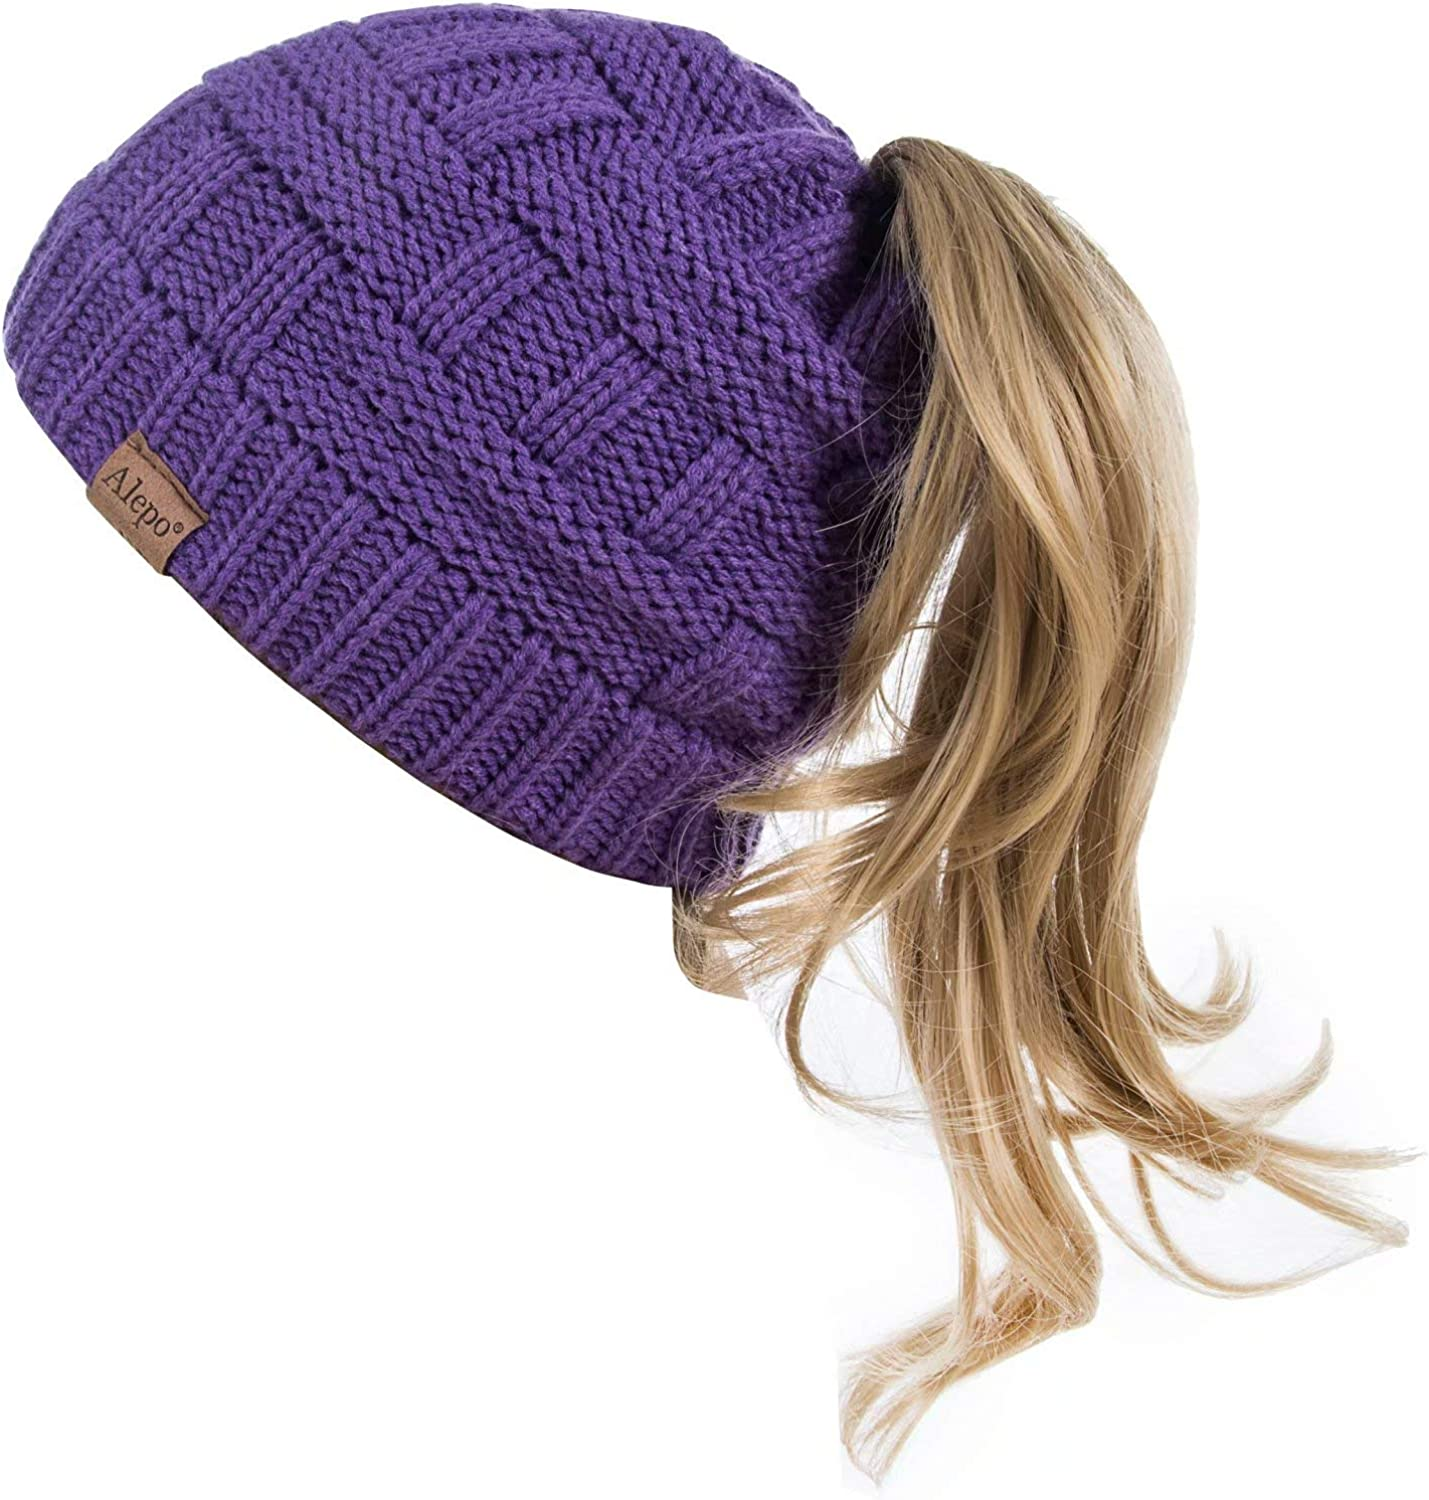 Alepo Womens High Messy Bun Super sale period limited lowest price Beanie Hole Winte with Hat Ponytail